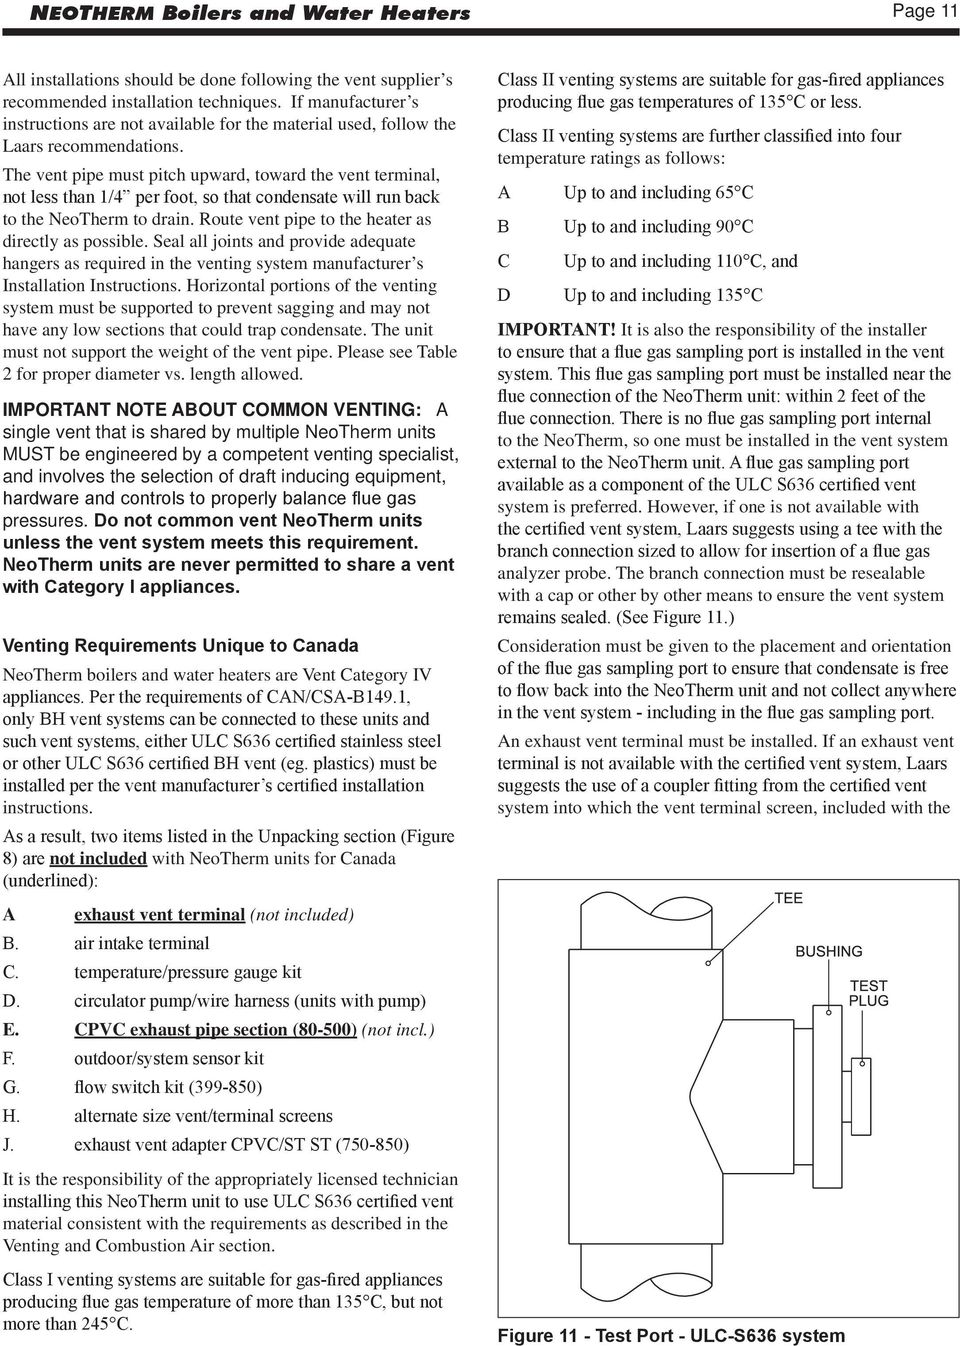 Neotherm Installation And Operation Instructions Modulating Boiler 850 Gas Furnace Schematic The Vent Pipe Must Pitch Upward Toward Terminal Not Less Than 1